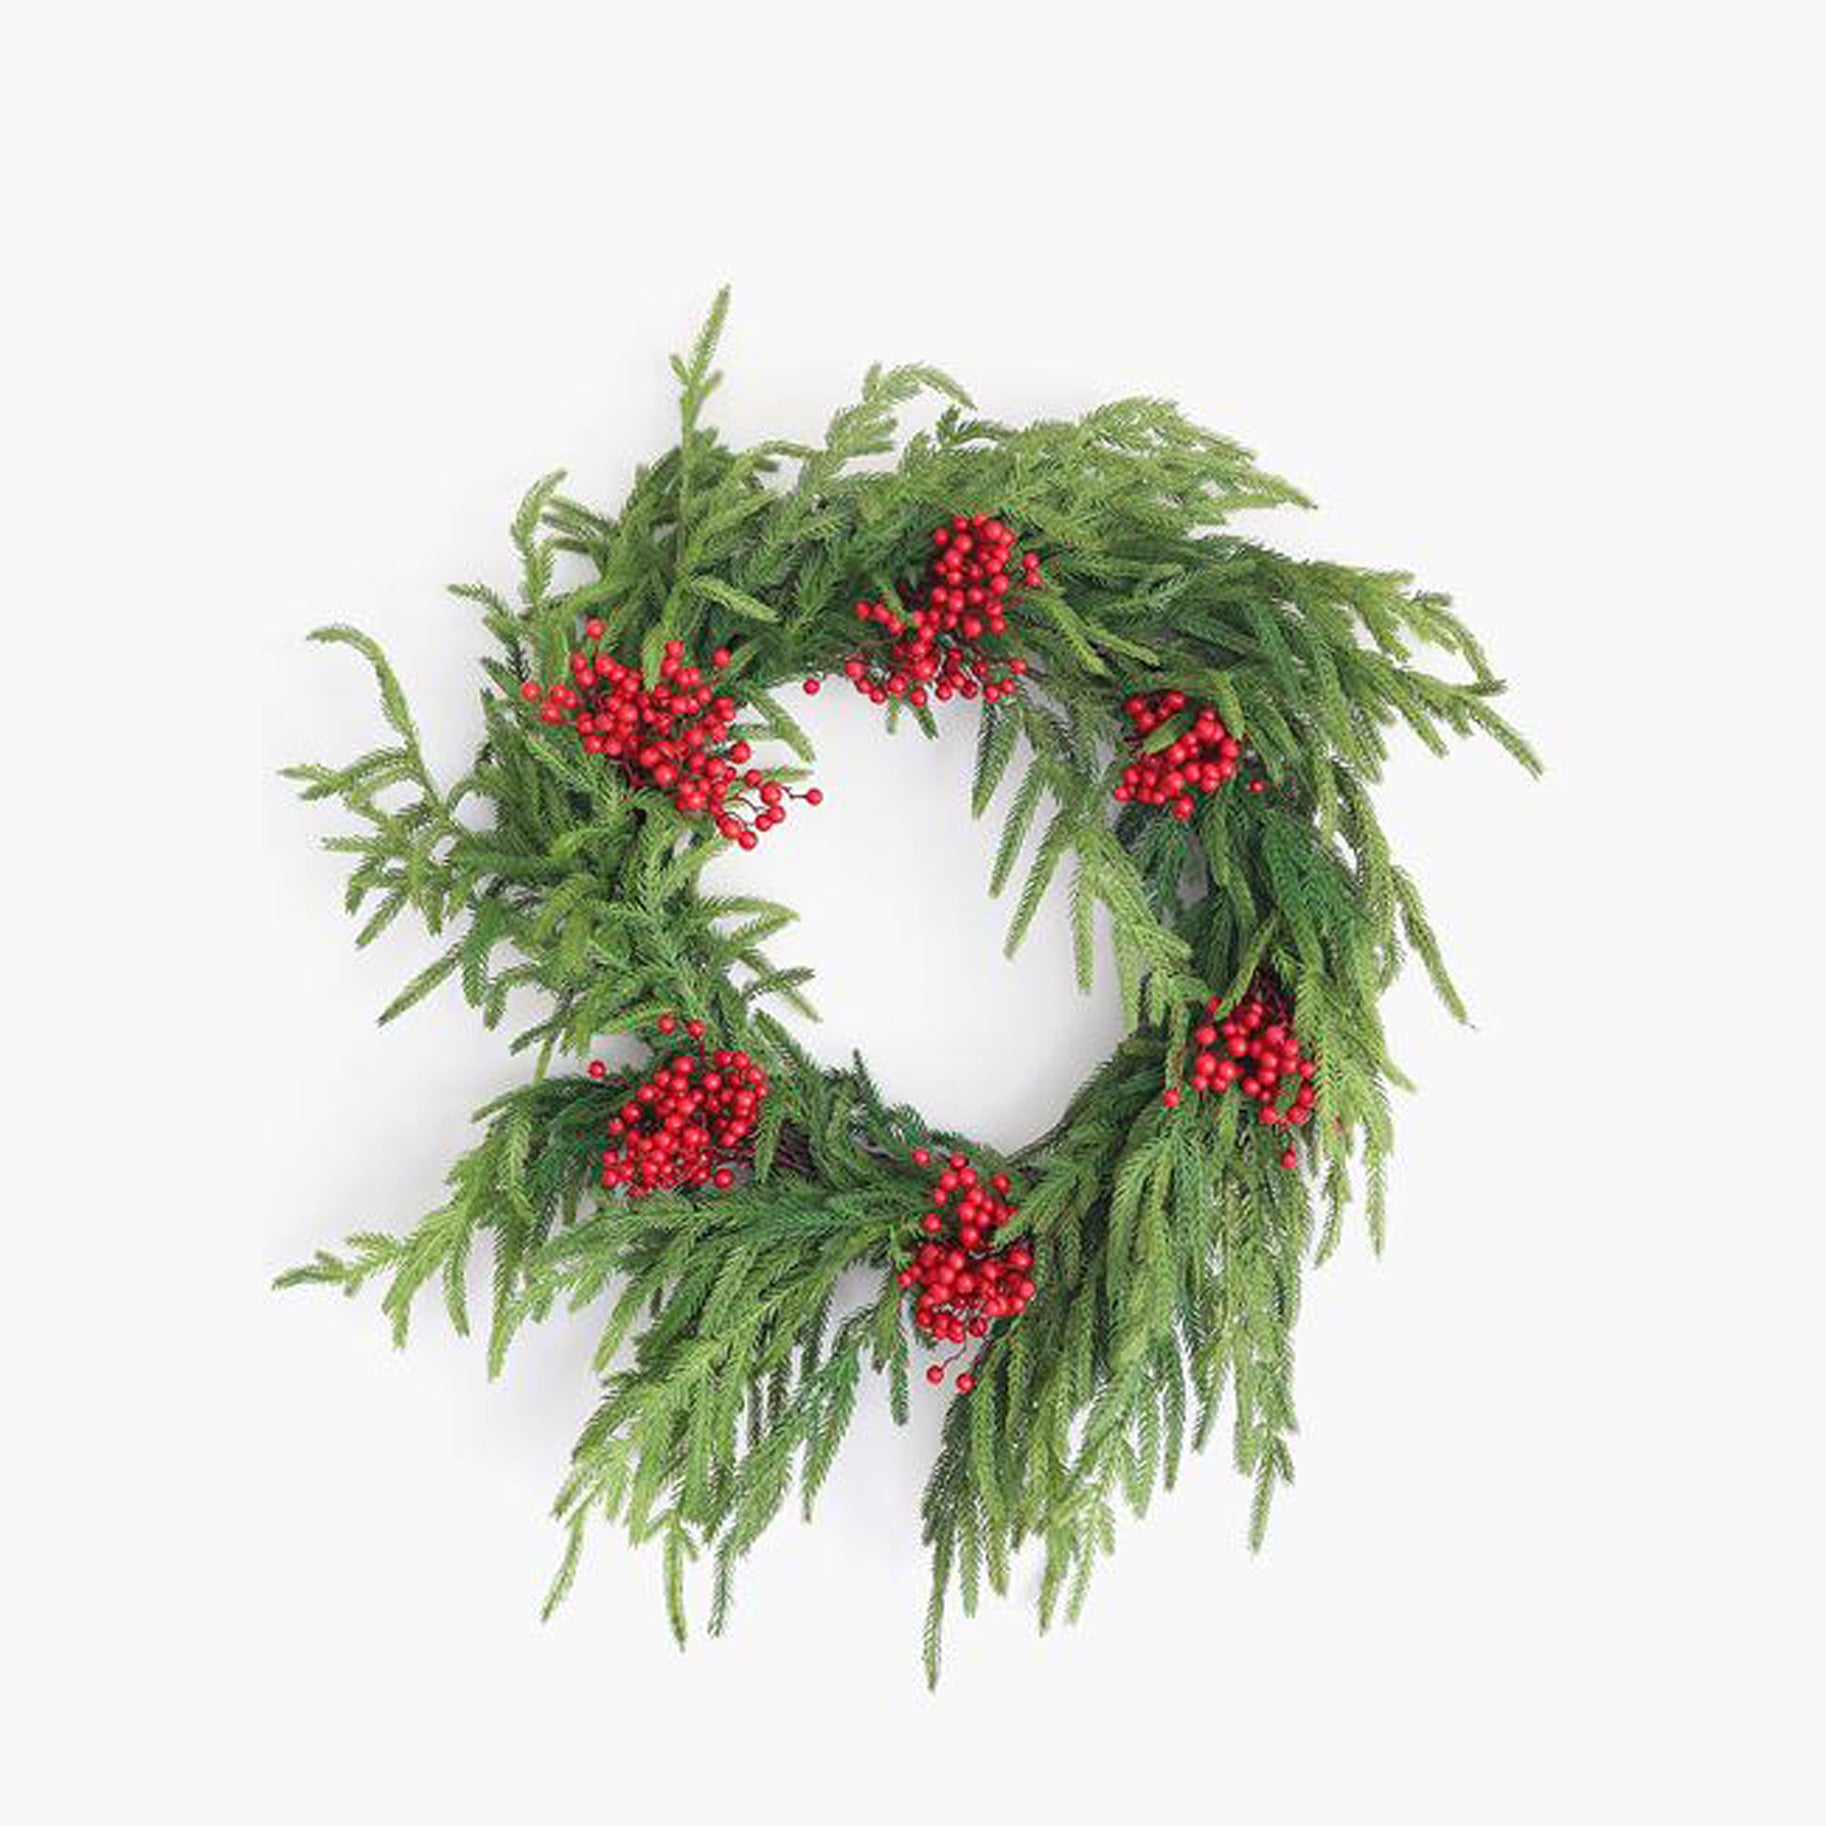 The Best Holiday Wreaths Option: Afloral Real Touch Norfolk Pine Wreath